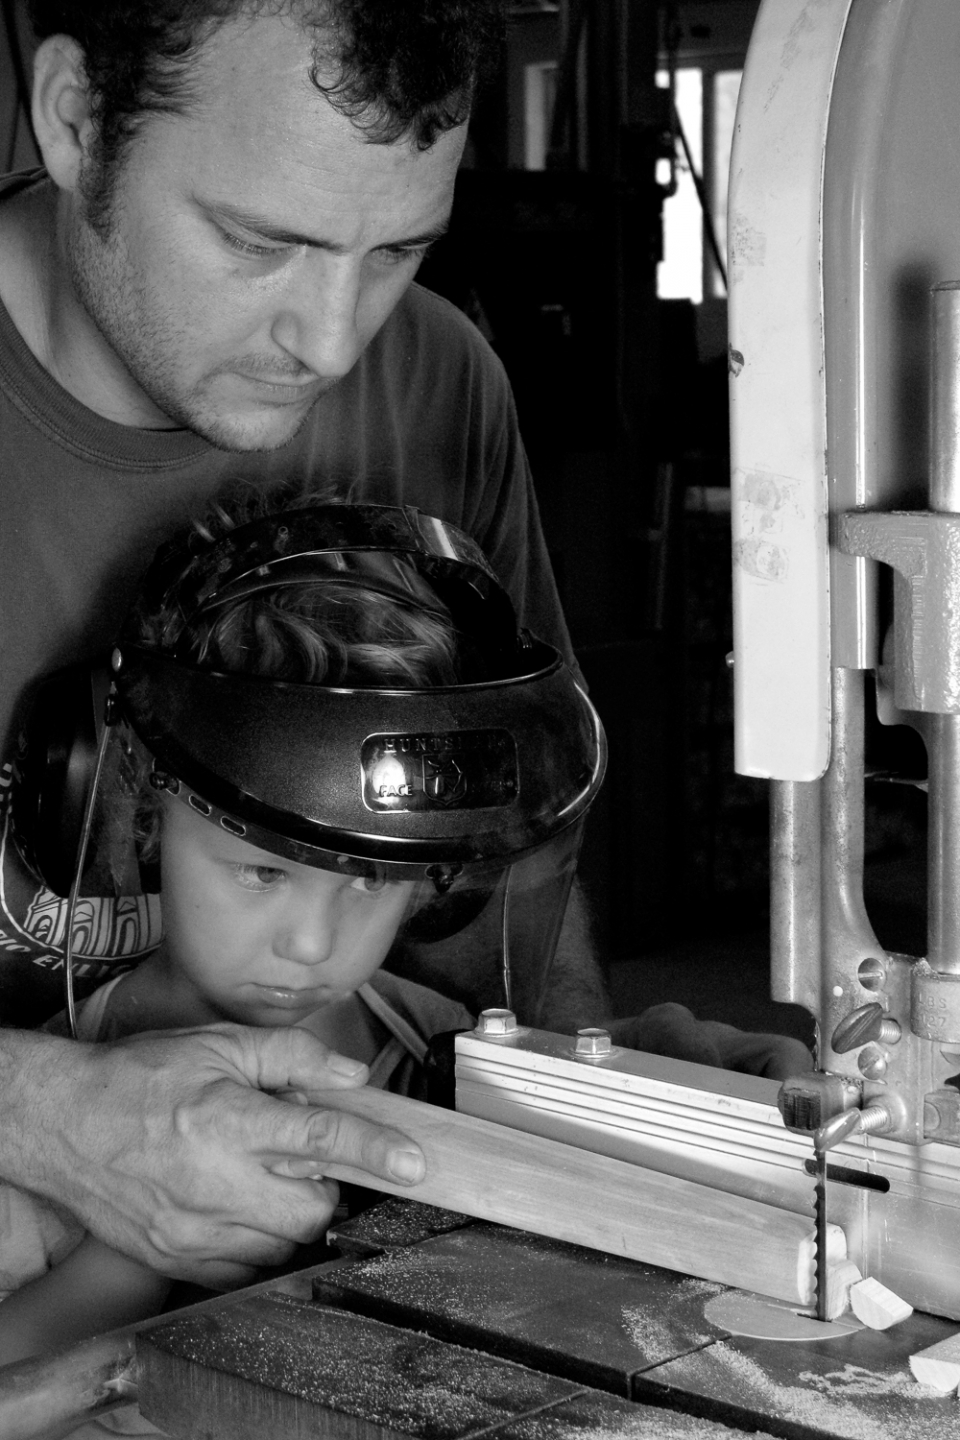 Will and Asa (age 6) at the bandsaw